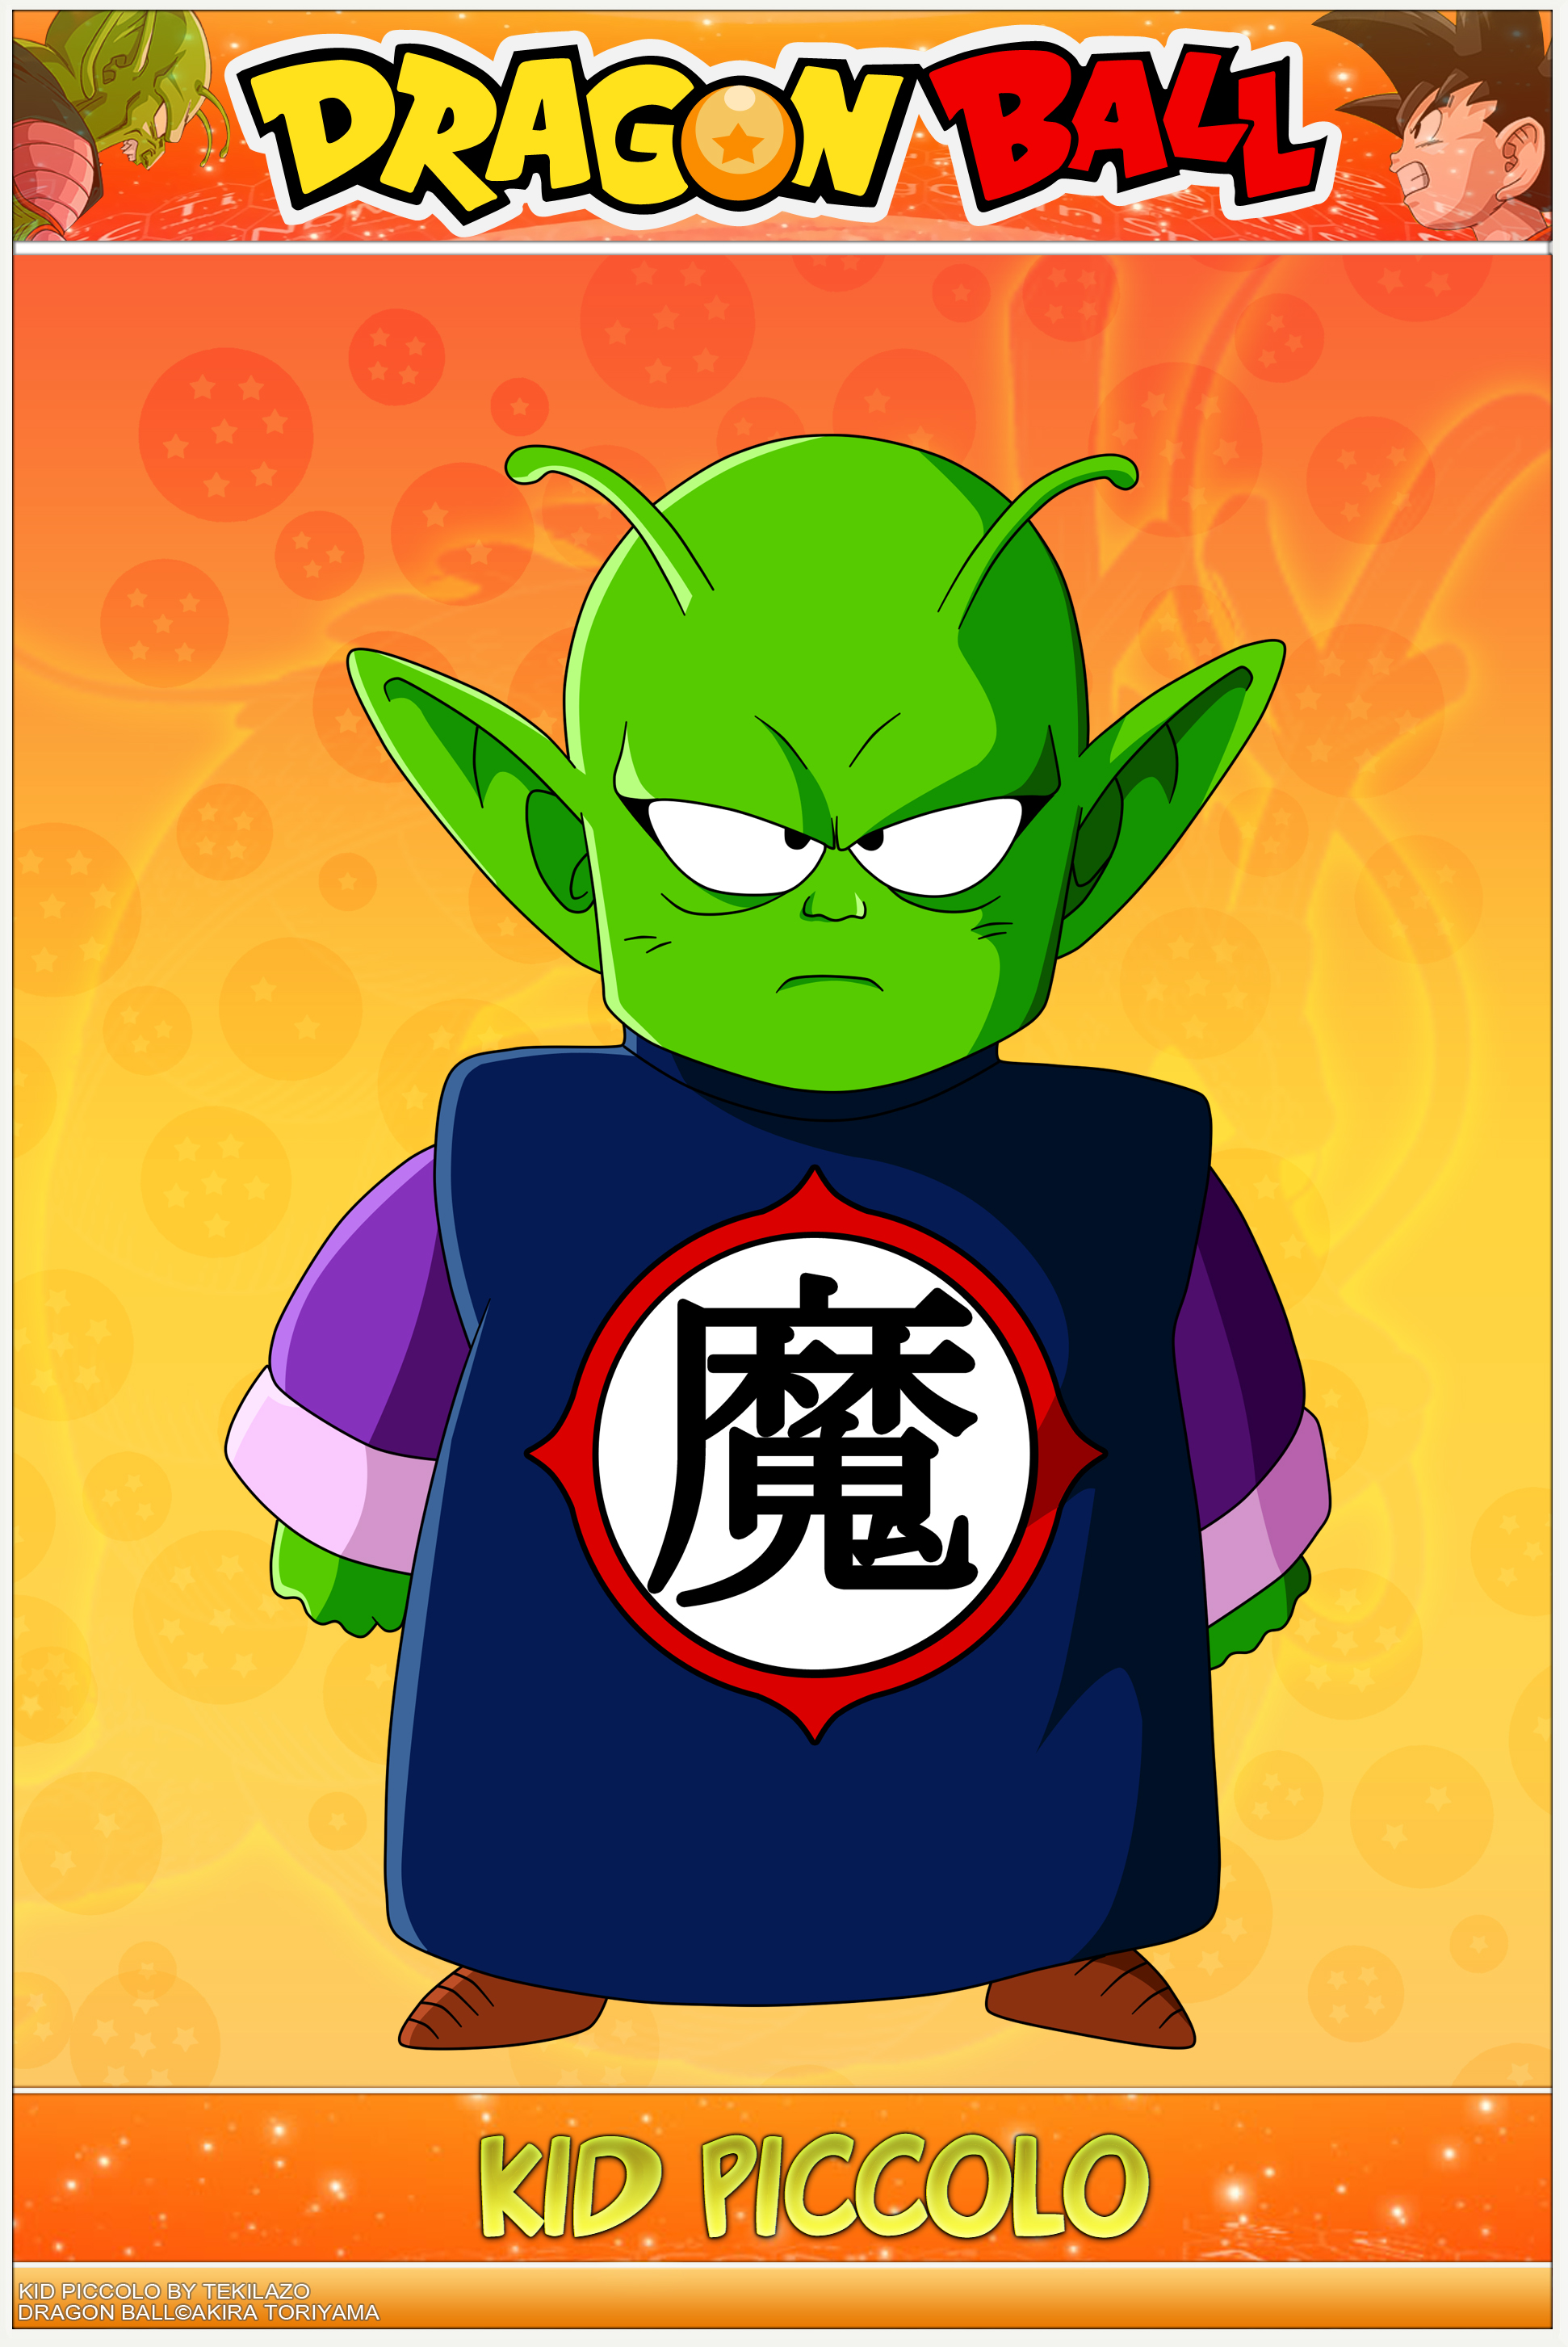 Kid Piccolo Jr   www.pixshark.com - Images Galleries With ...